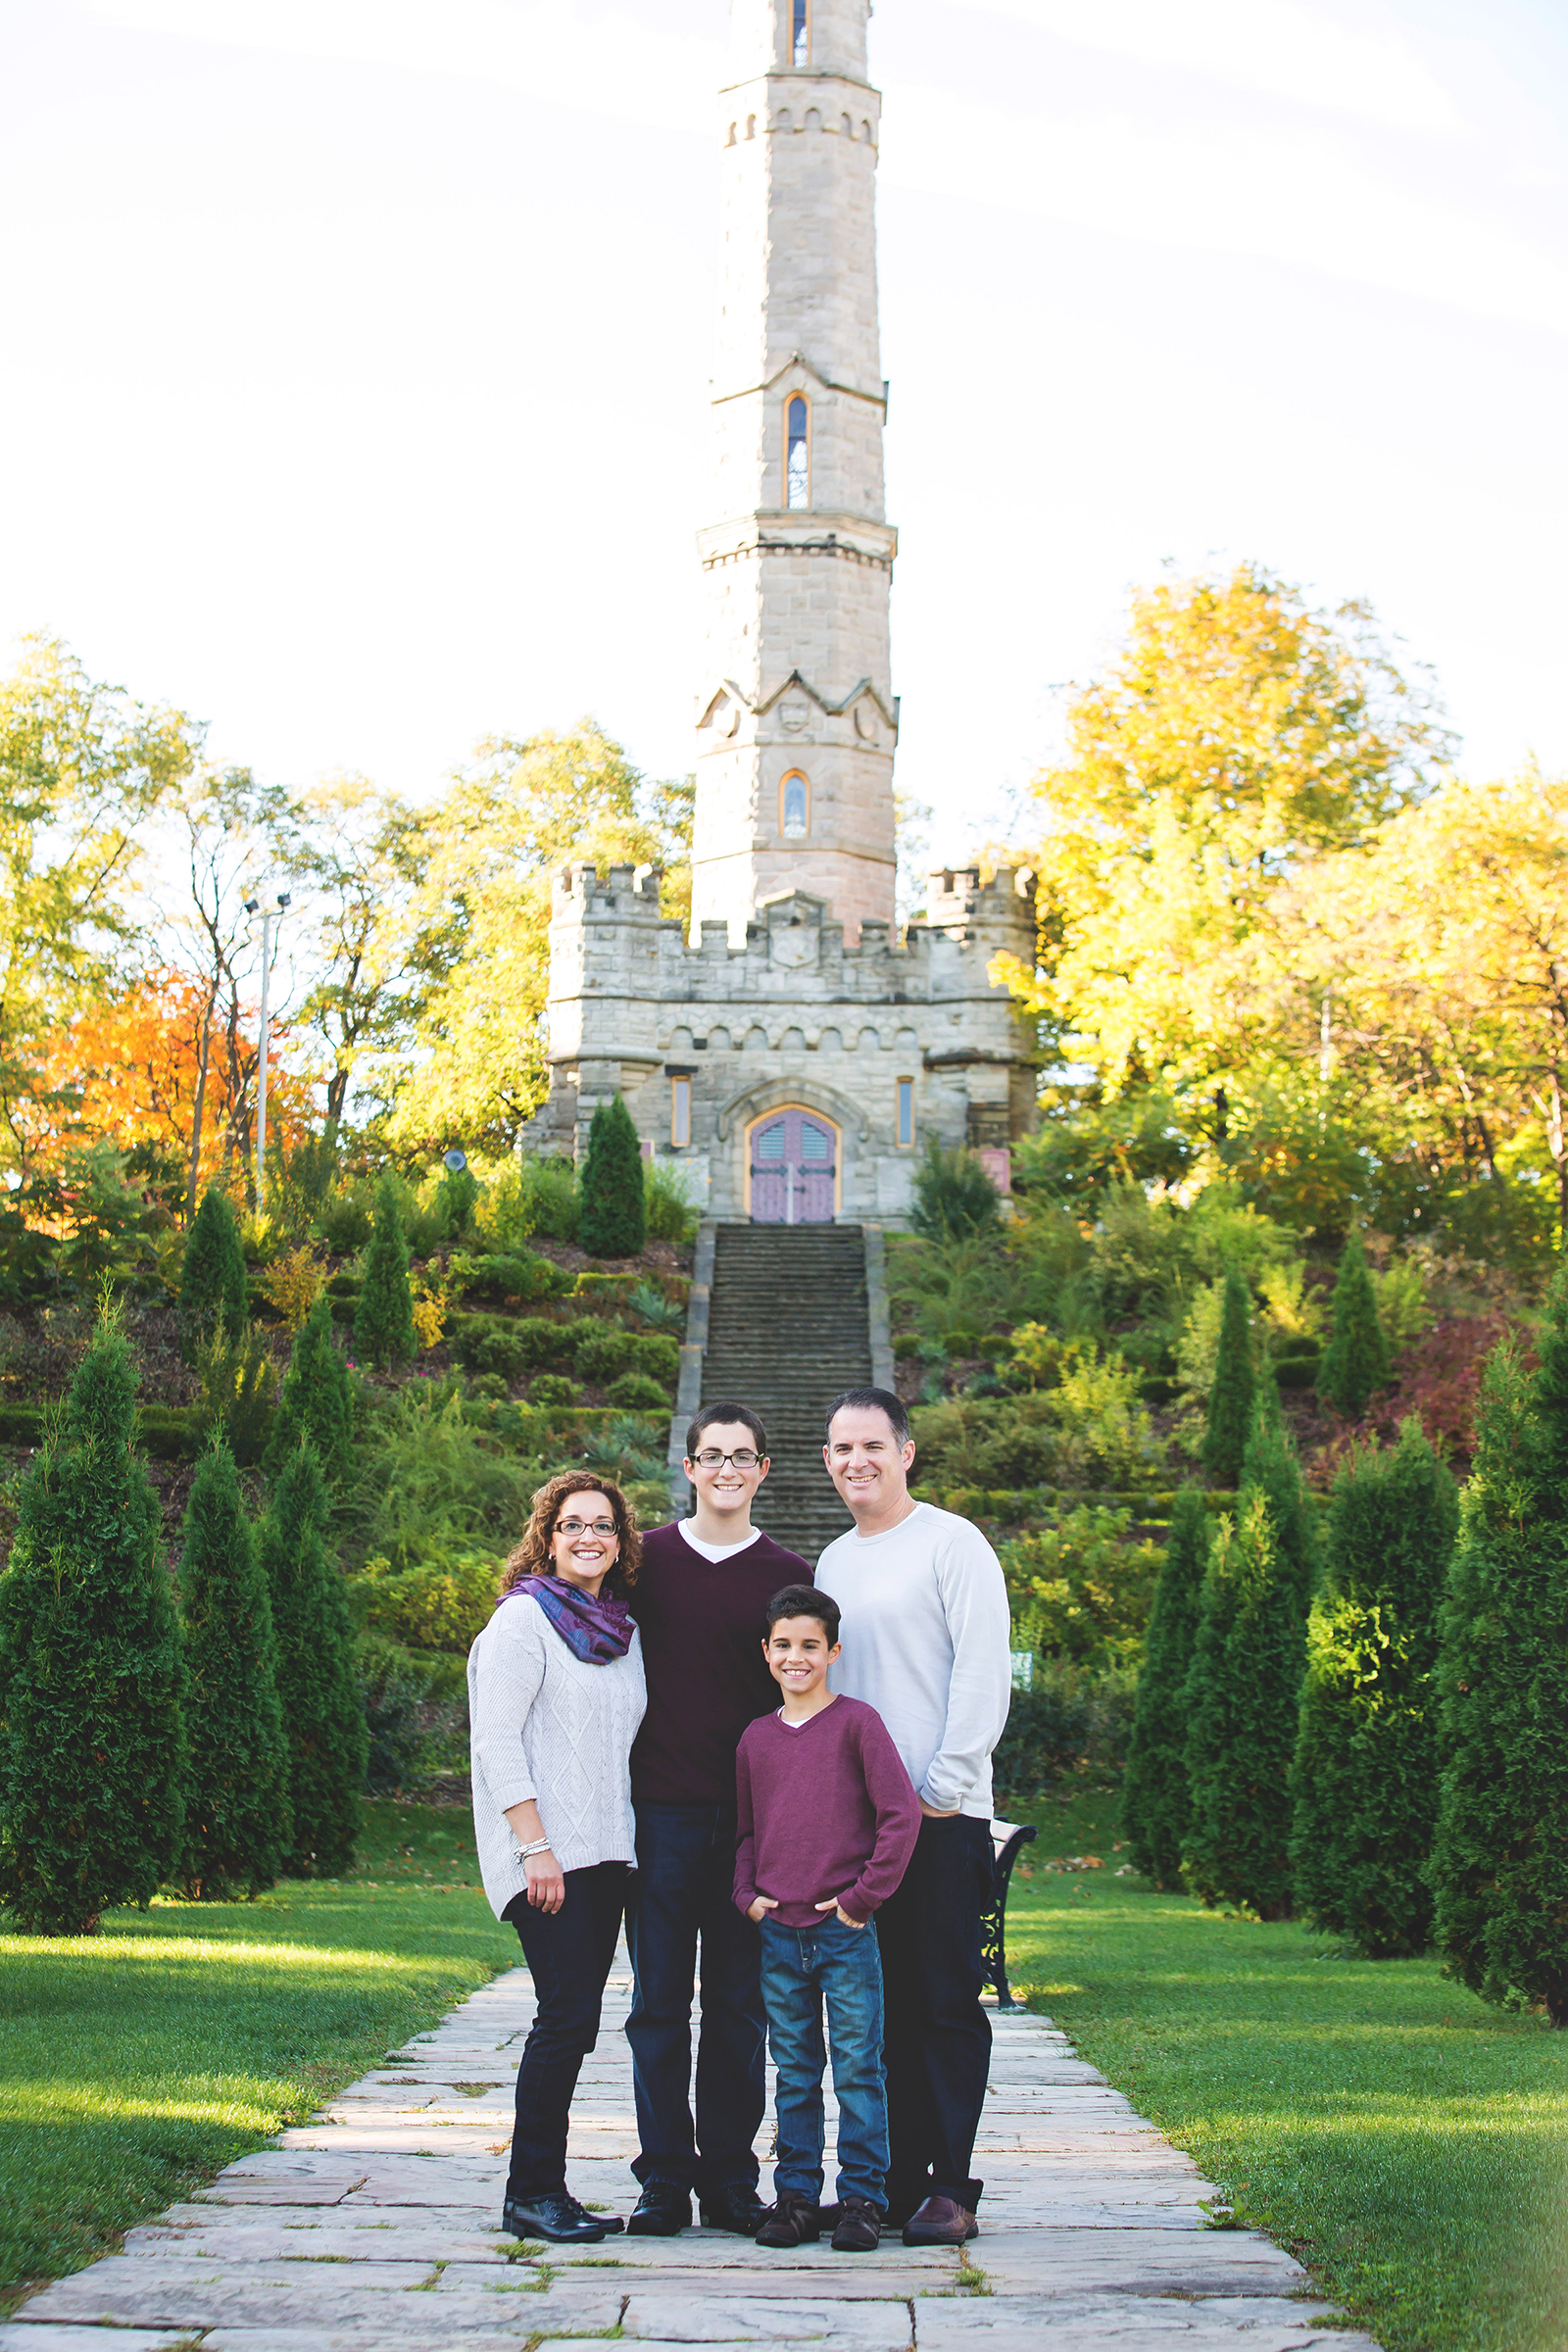 Family-Portraits-Hamilton-Stoney-Creek-Oakville-Burlington-Niagara-Photography-Moments-by-Lauren-Photographer-Lifestyle-Photo-Image6-1.png